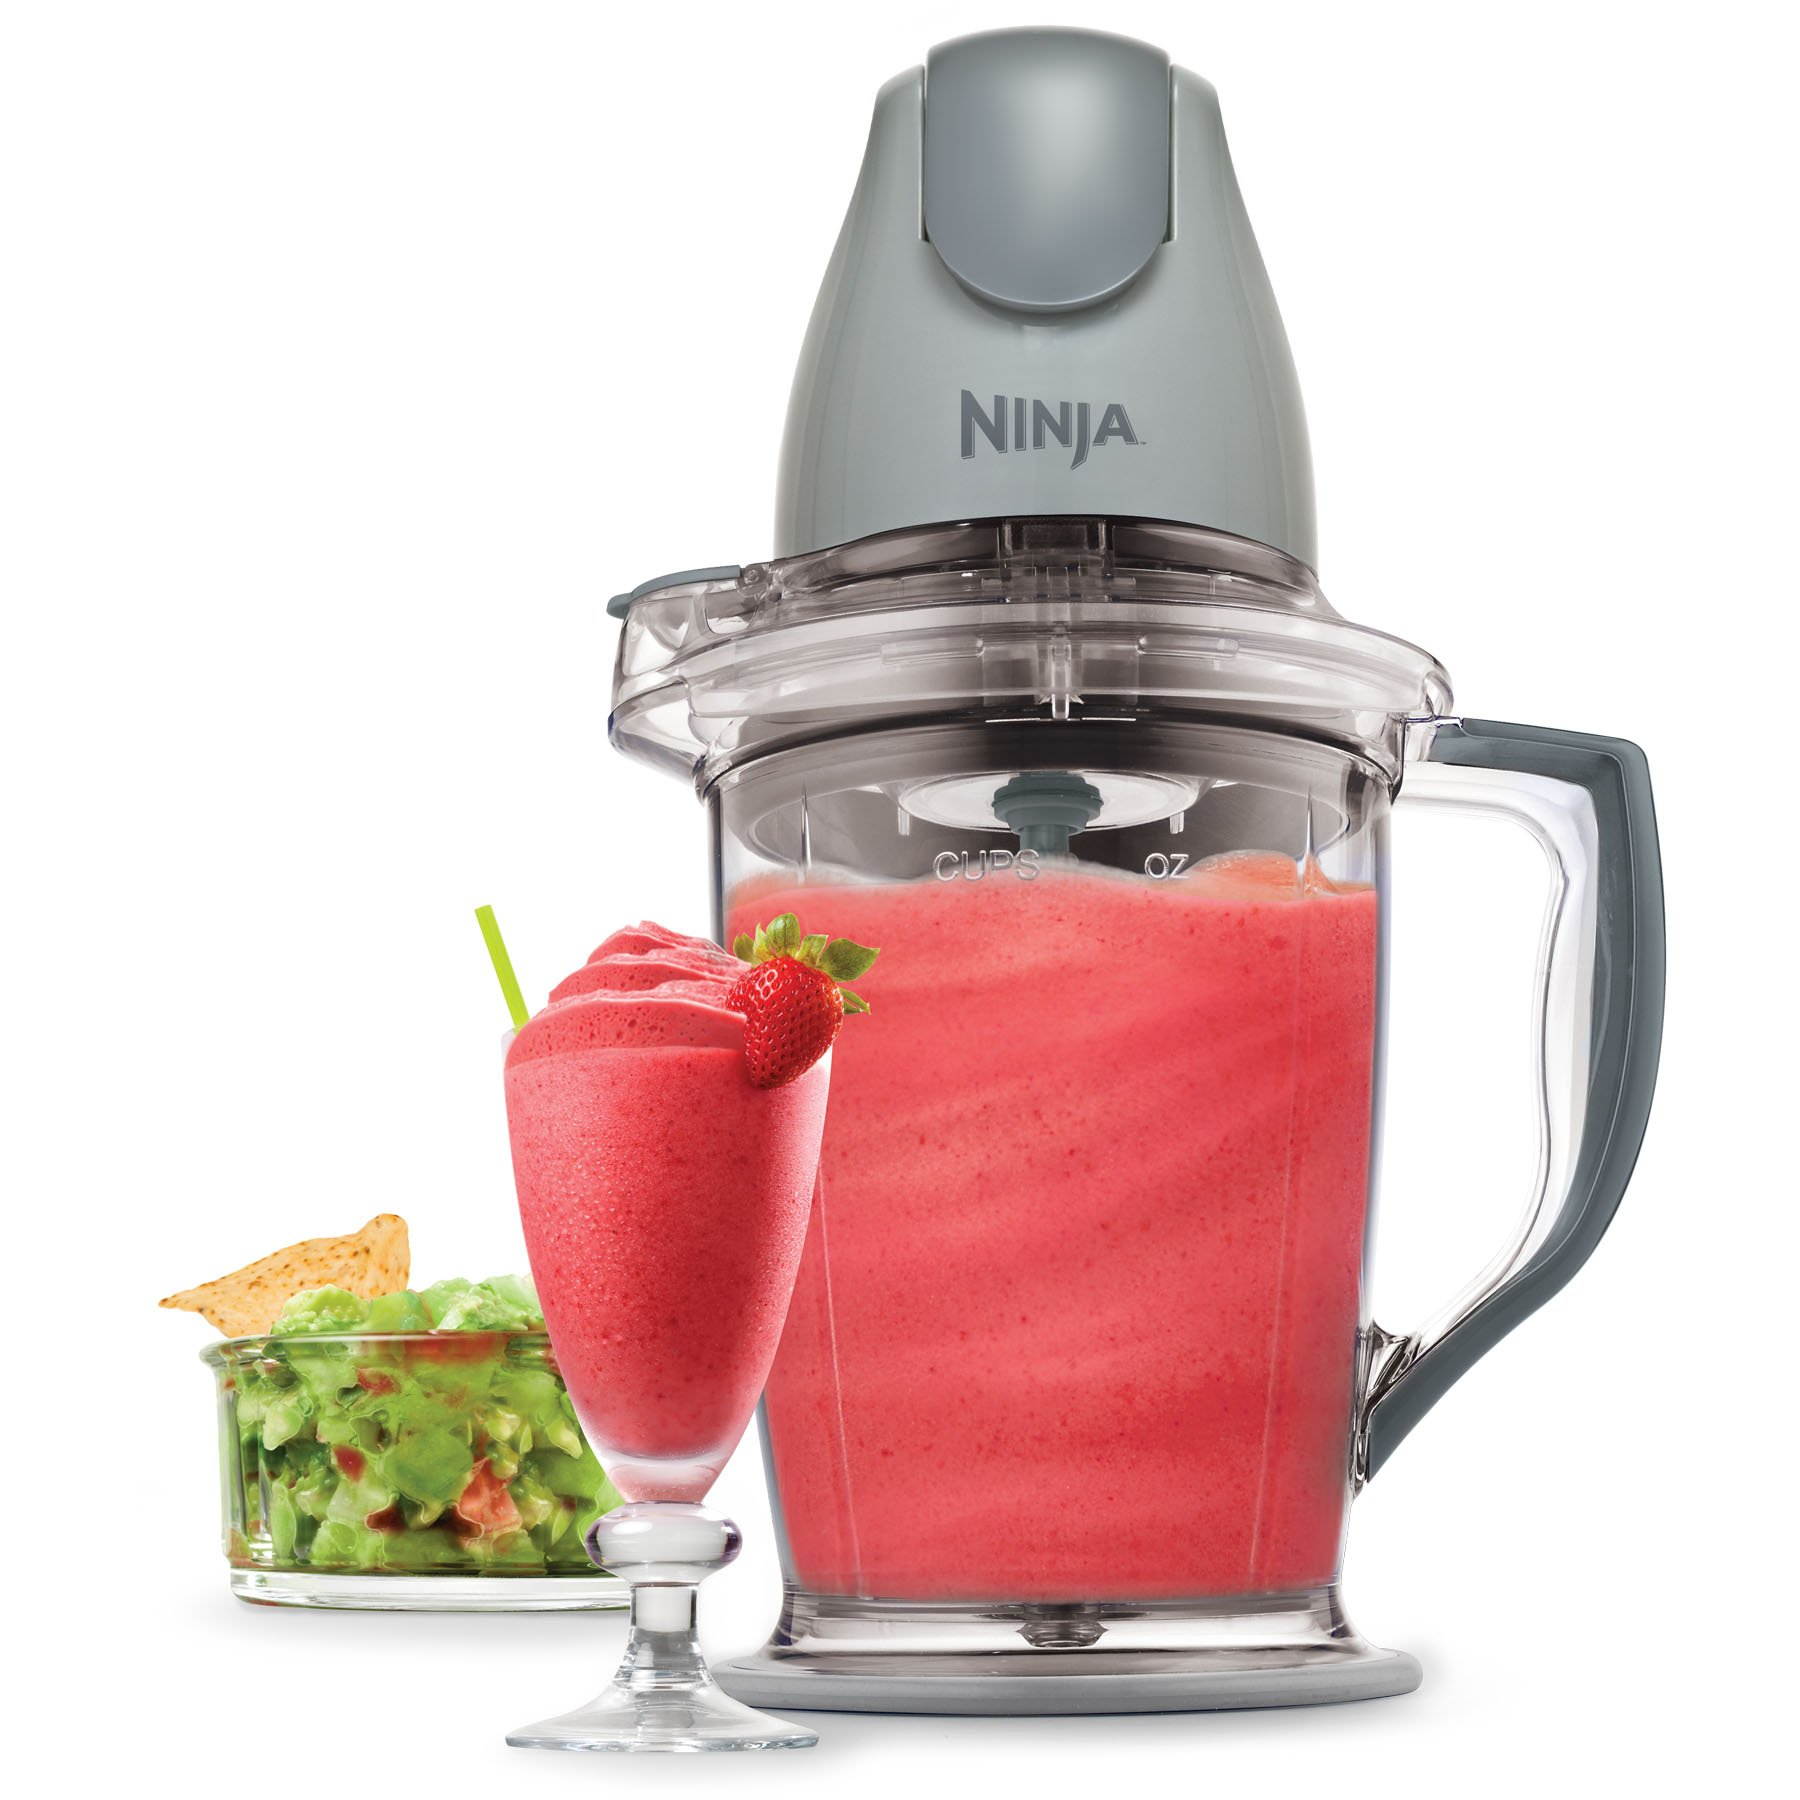 Ninja 400-Watt Blender/Food Processor for Frozen Blending, Chopping and Food Prep with 48-Ounce Pitcher and 16-Ounce Chopper Bowl (QB900B), Silver by SharkNinja (Image #4)